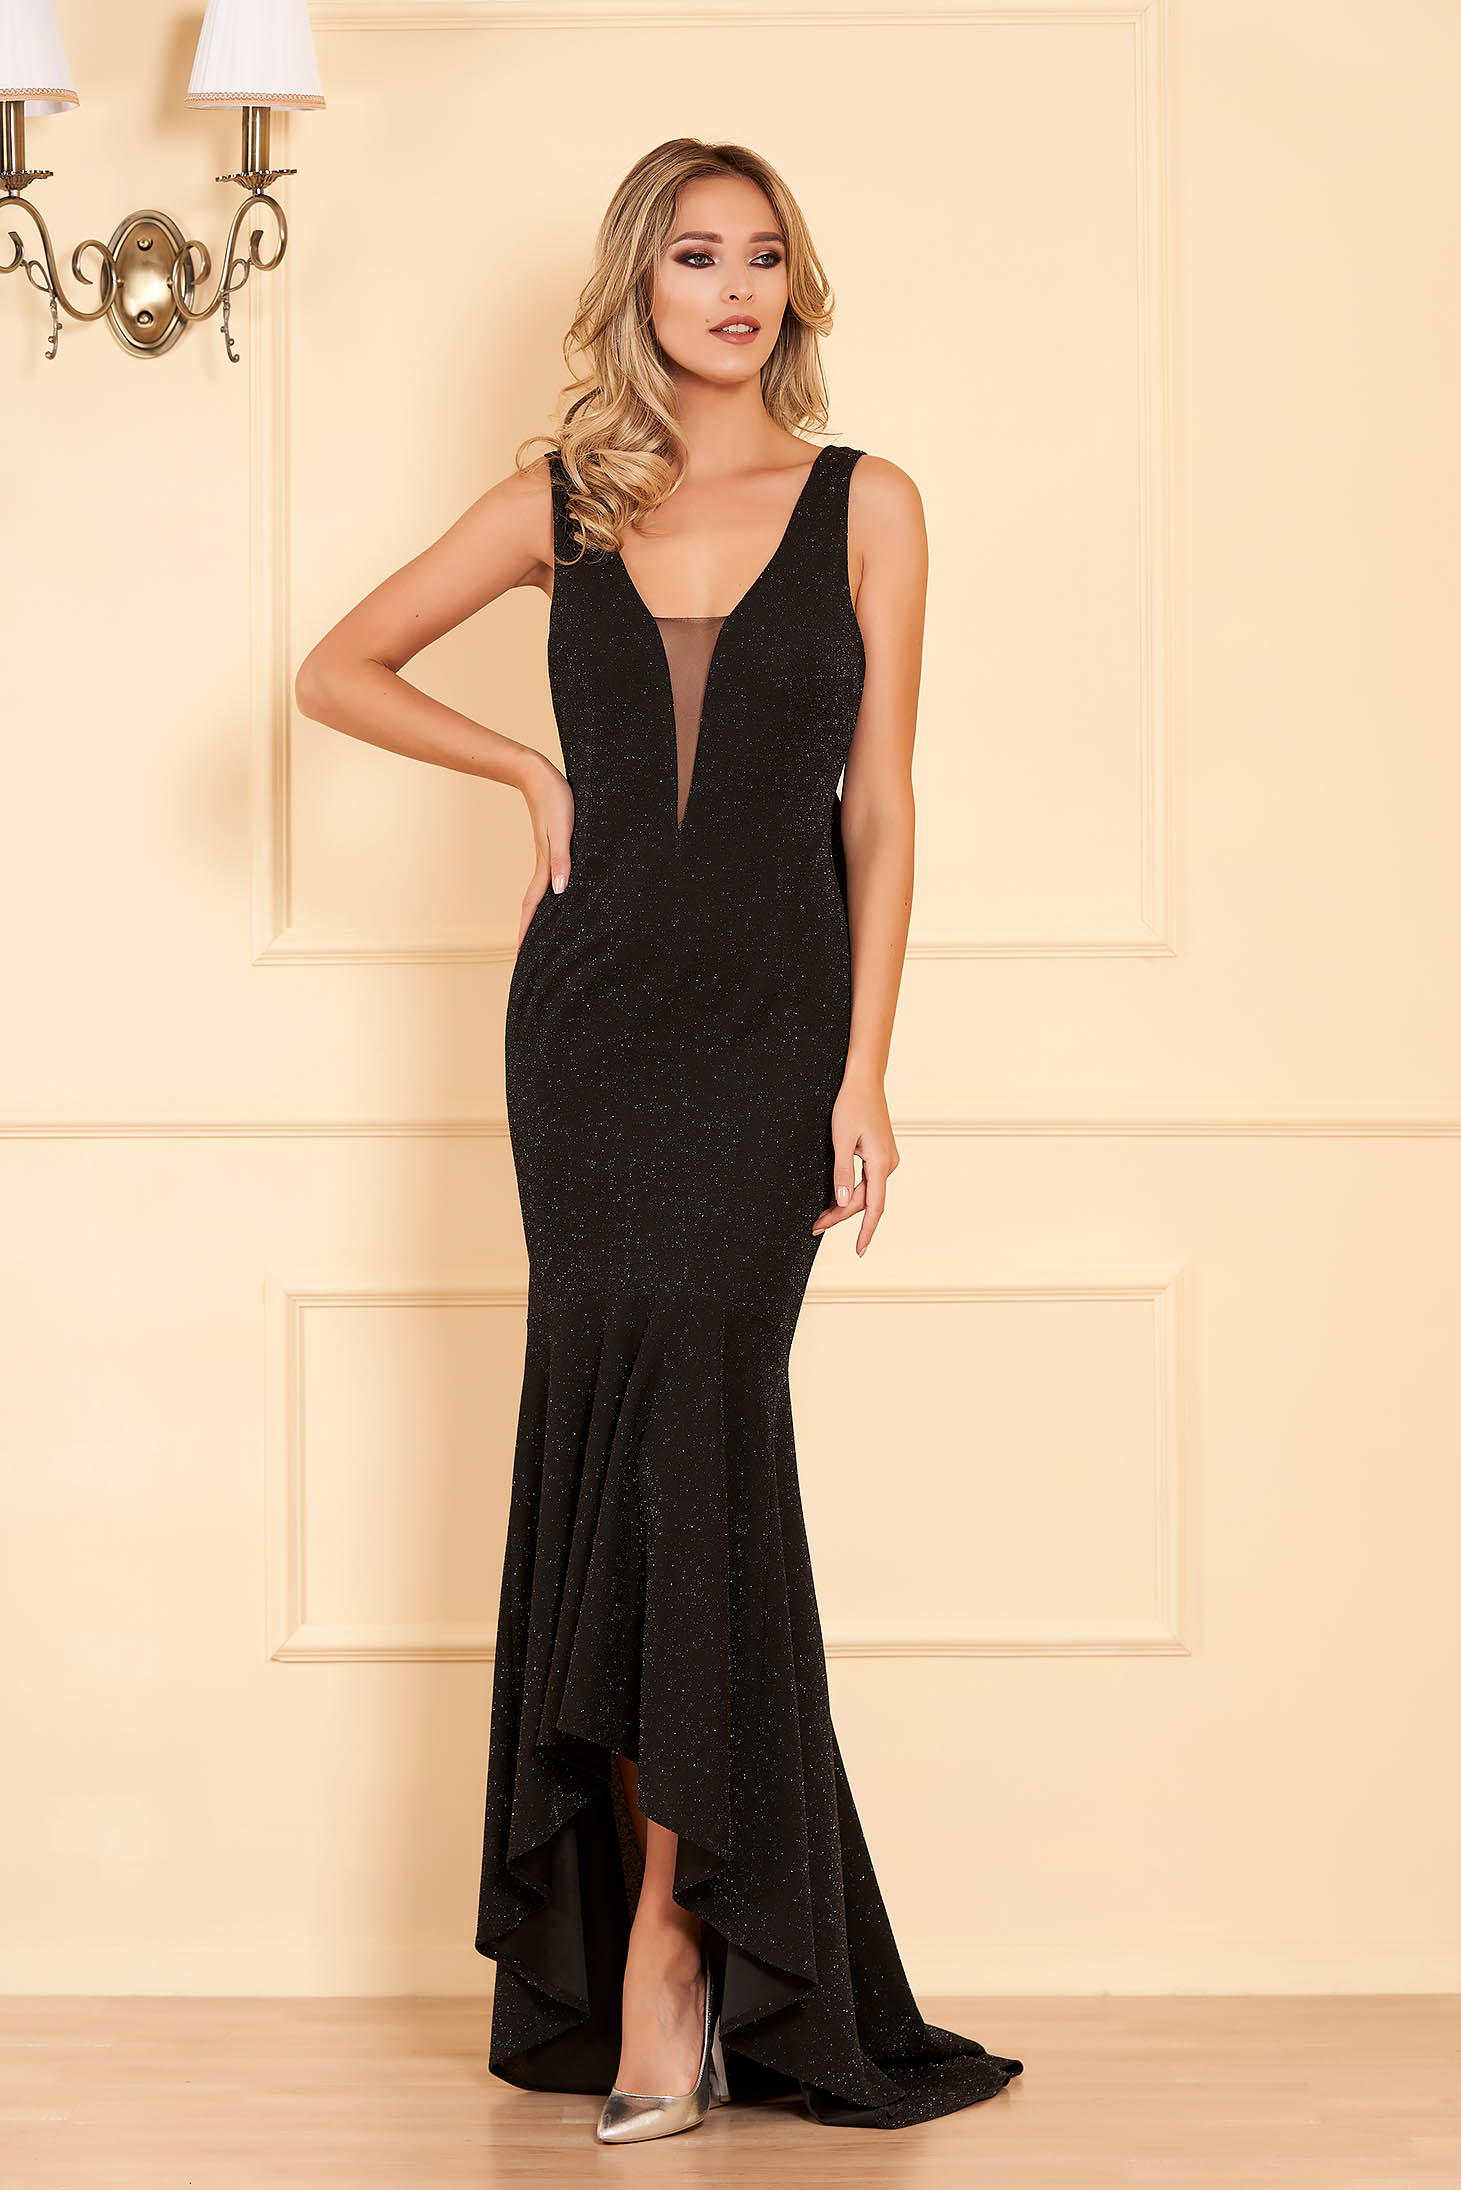 Artista black occasional dress slightly elastic fabric with push-up cups with ruffles at the buttom of the dress